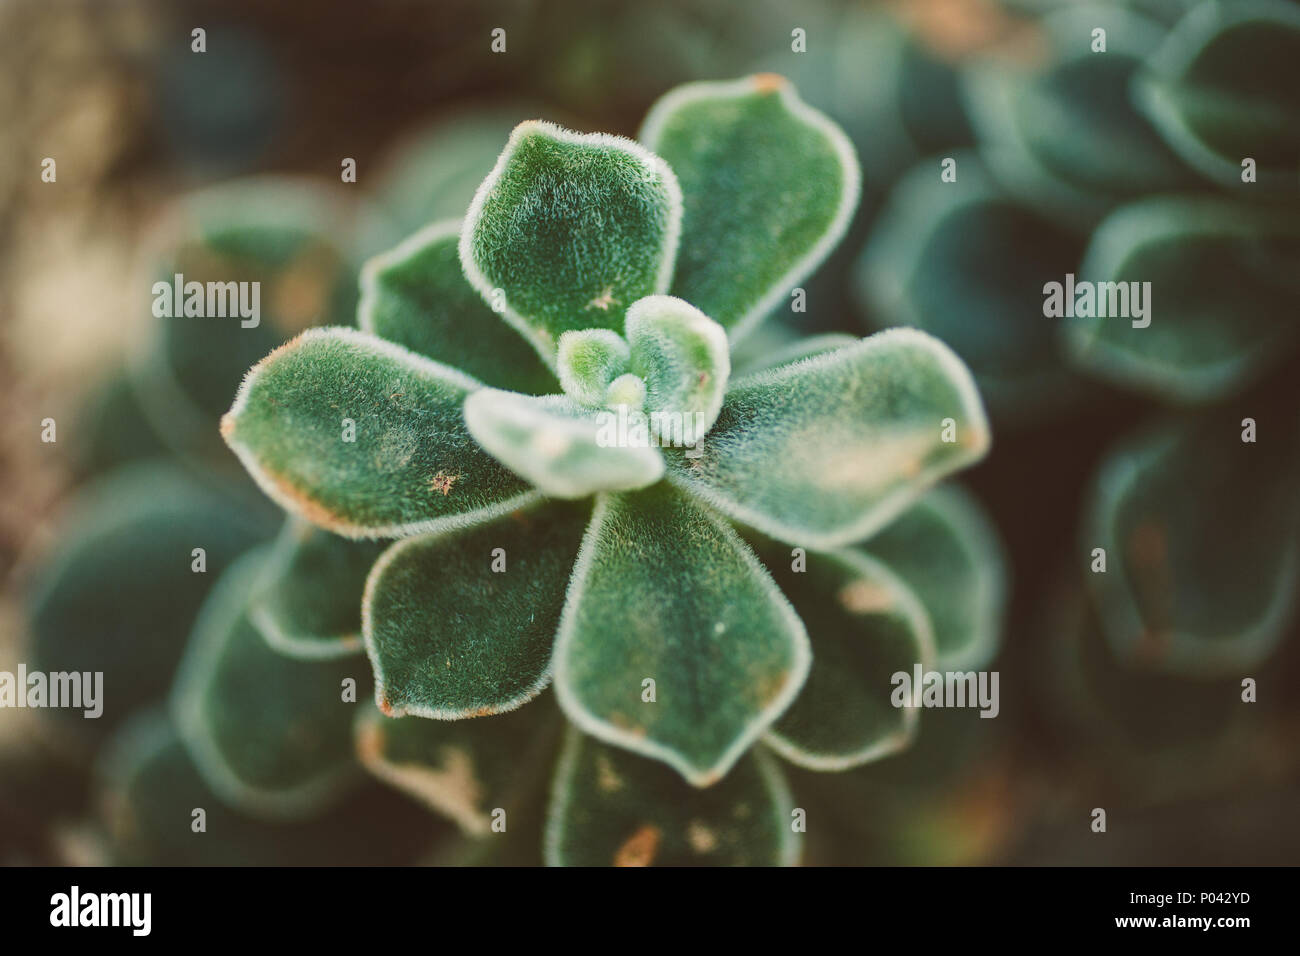 echeveria pulvinata macro close up of budding fuzzy succulent plant in muted colors - Stock Image